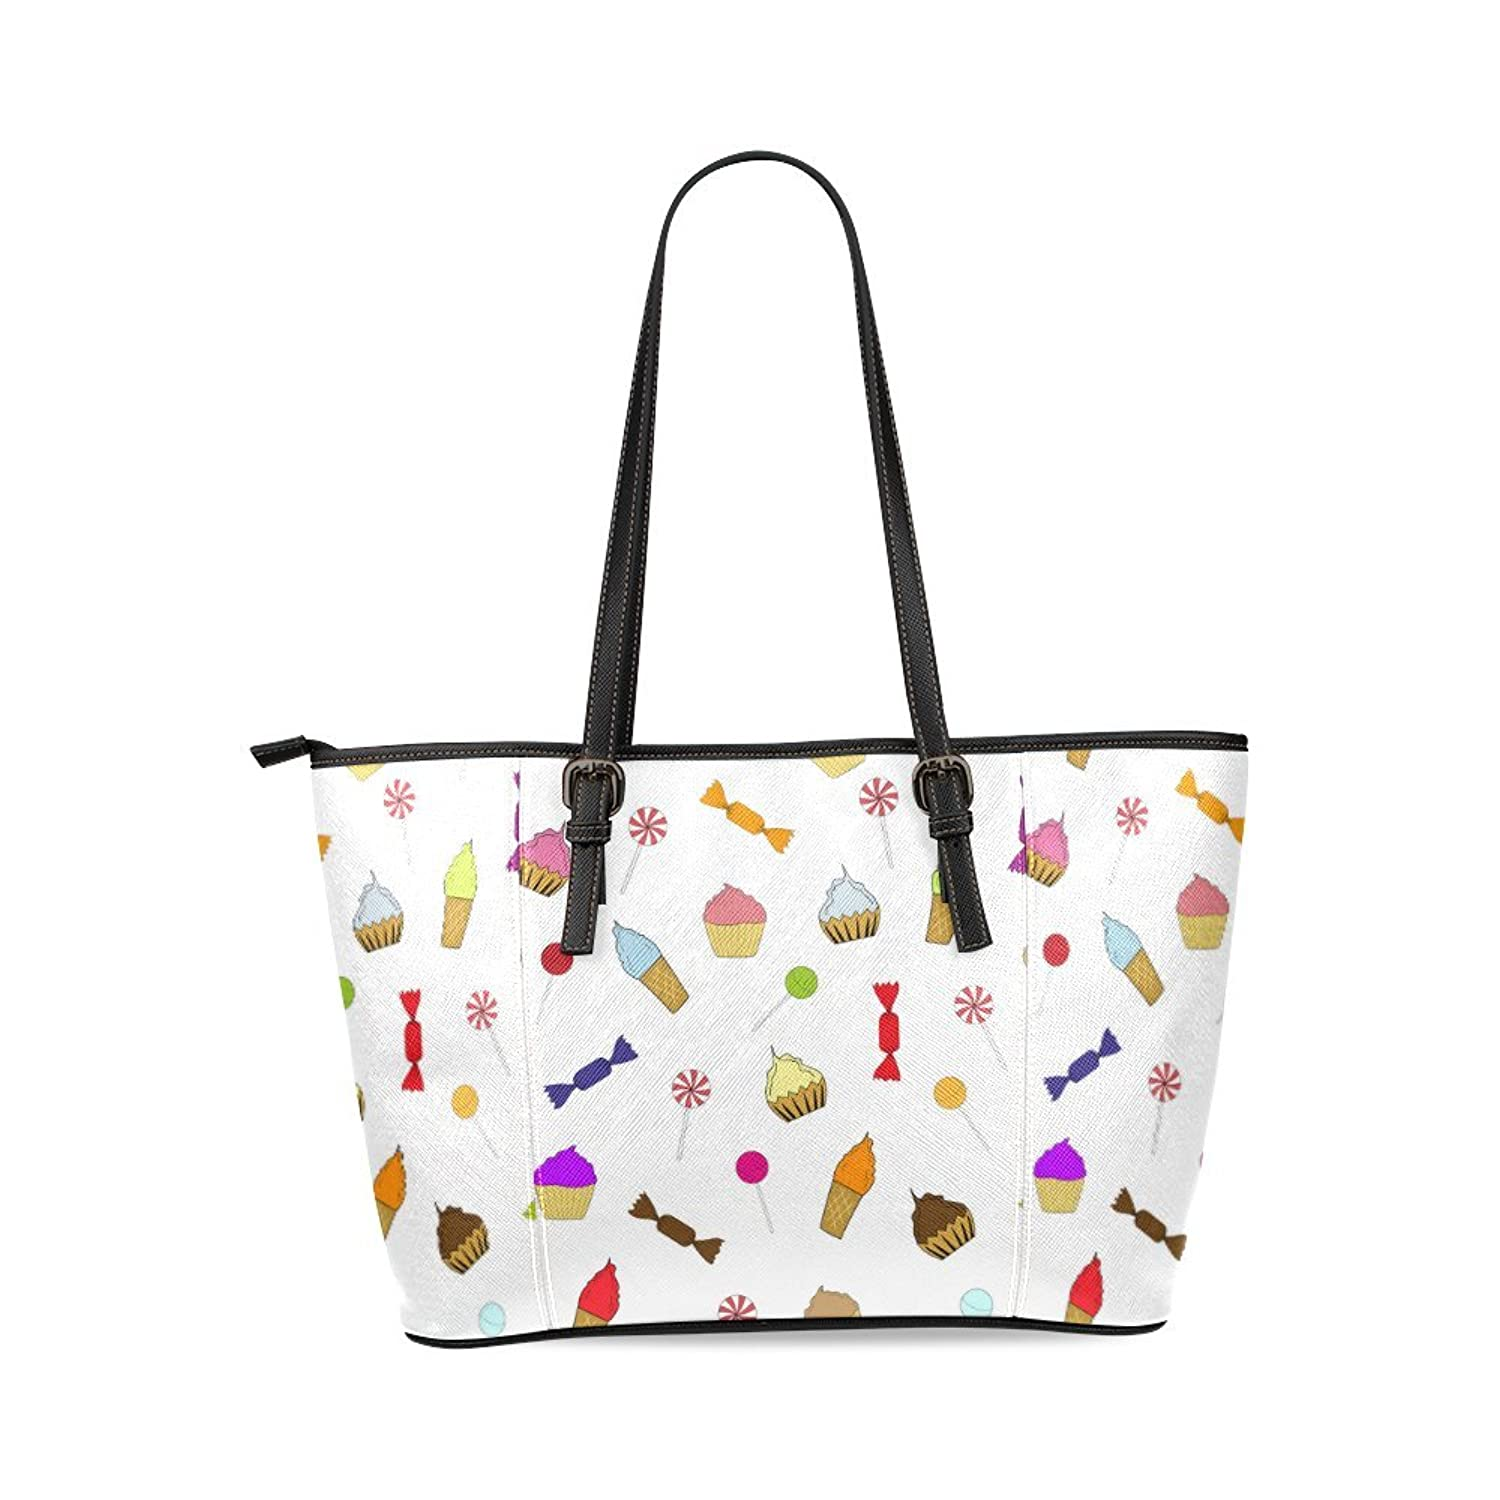 Ice Cream Custom Women's PU Leather Large Tote Bag/Handbag/Shoulder Bag